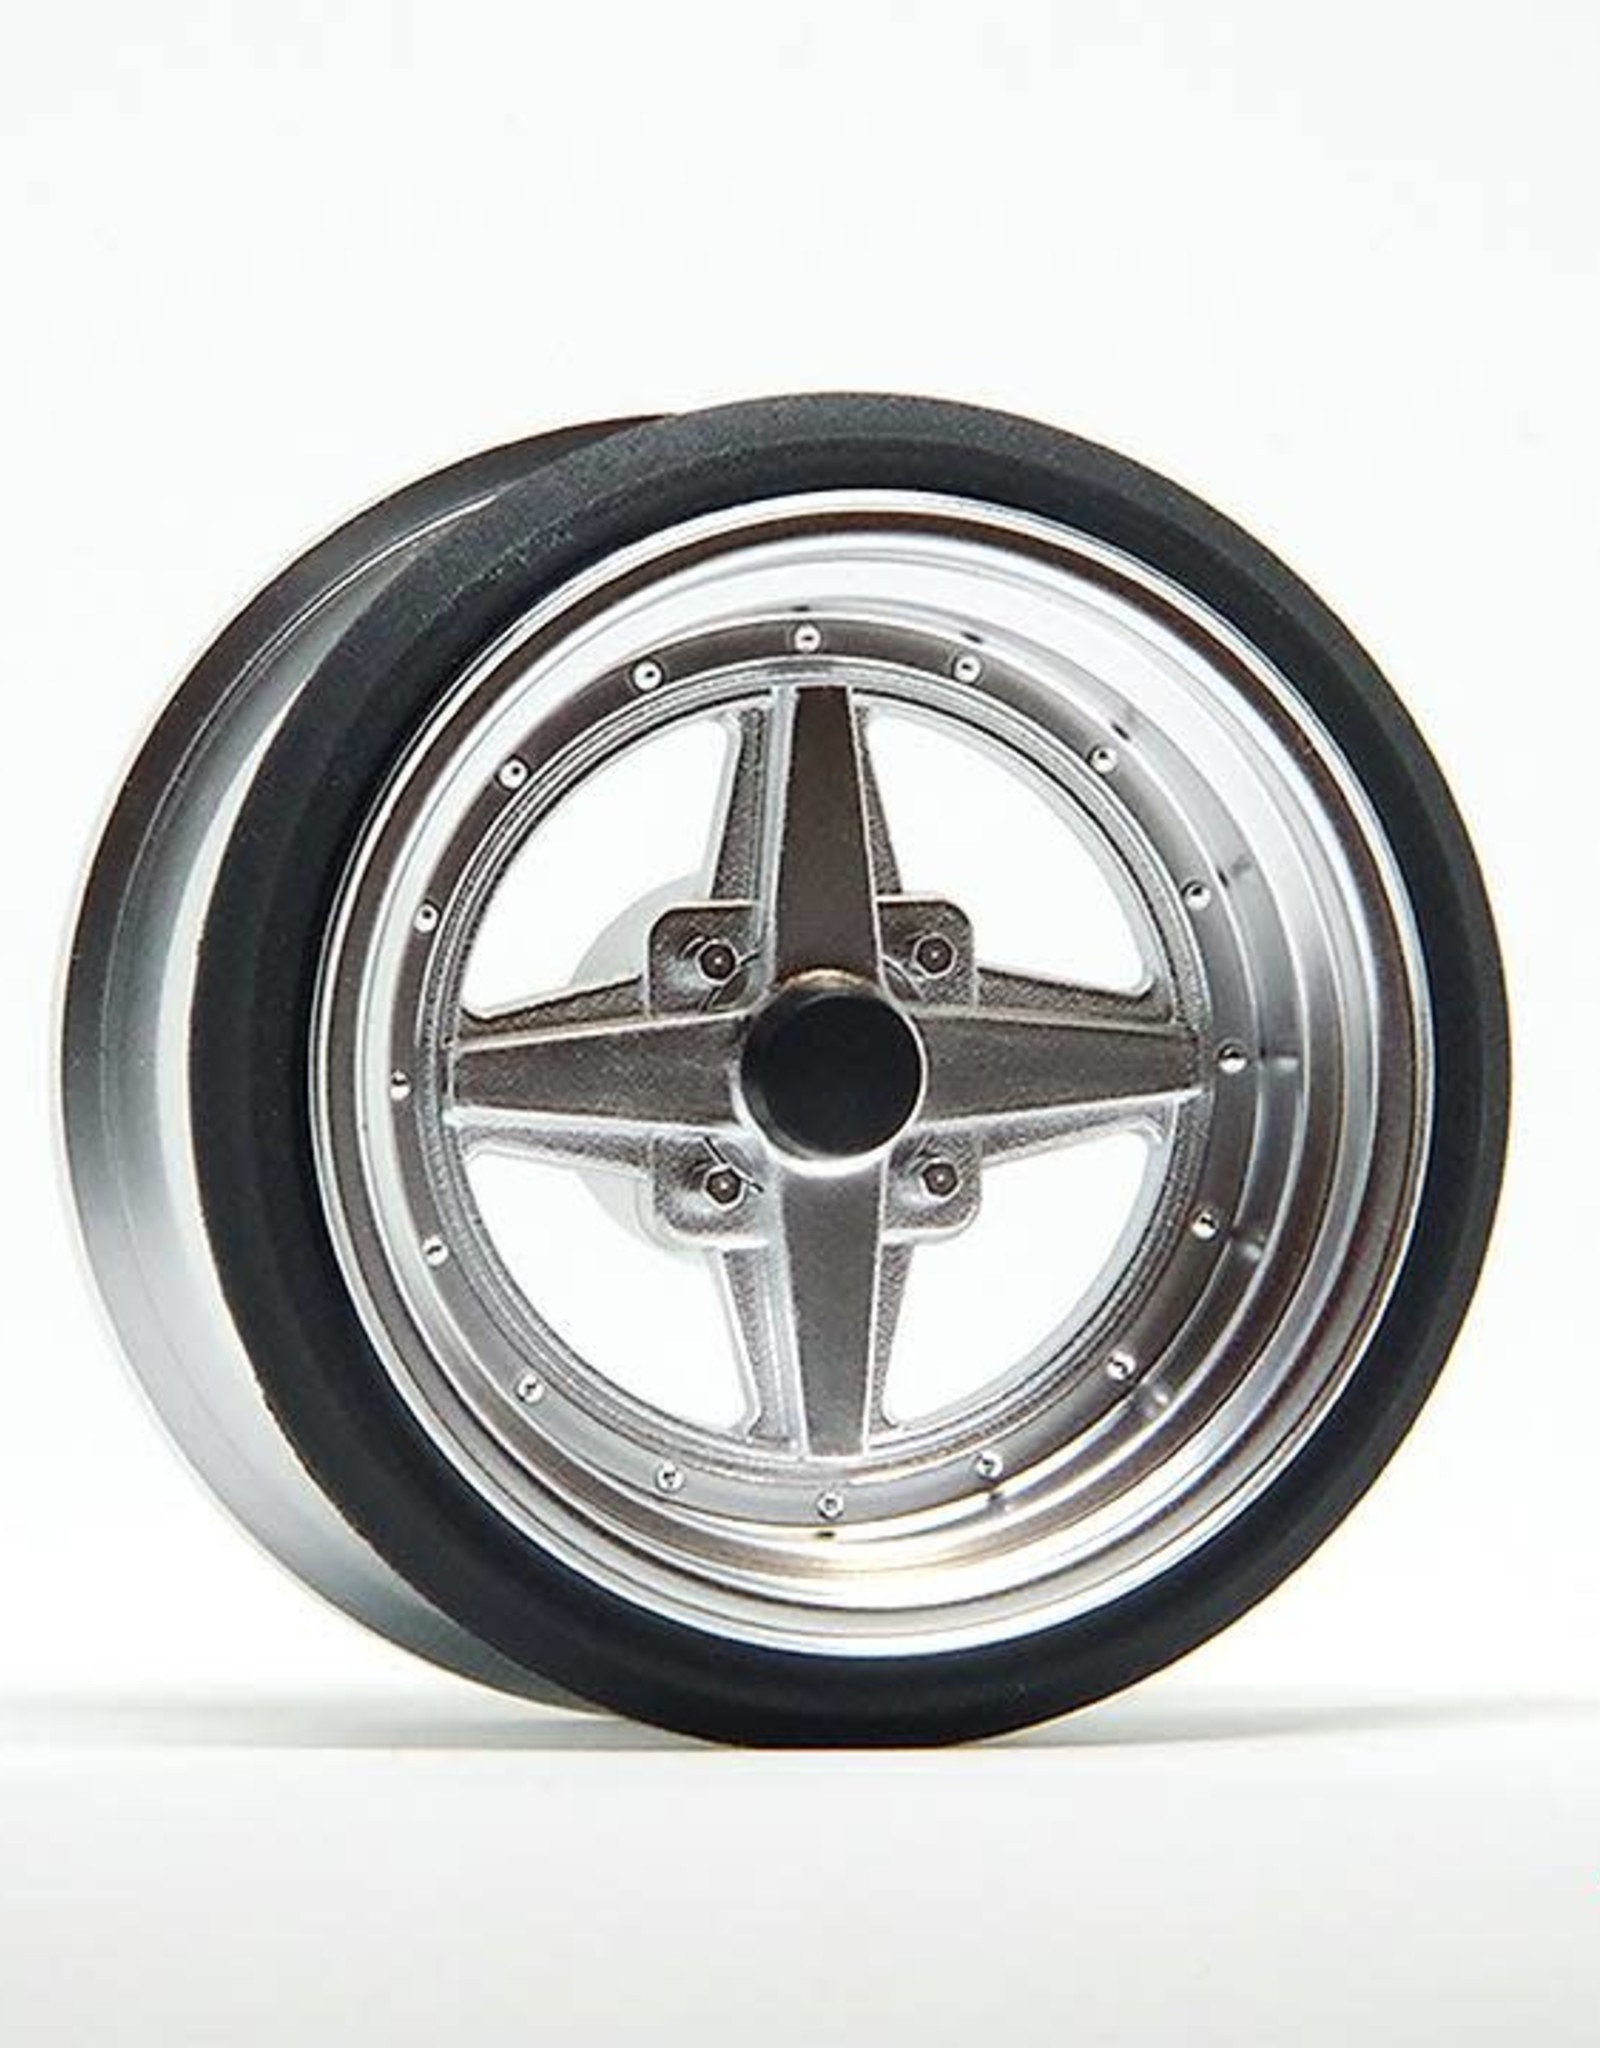 Scale Dynamics V16D 10114 Work Equip 01 Aluminum Silver Wheels by Scale Dynamics 10mm